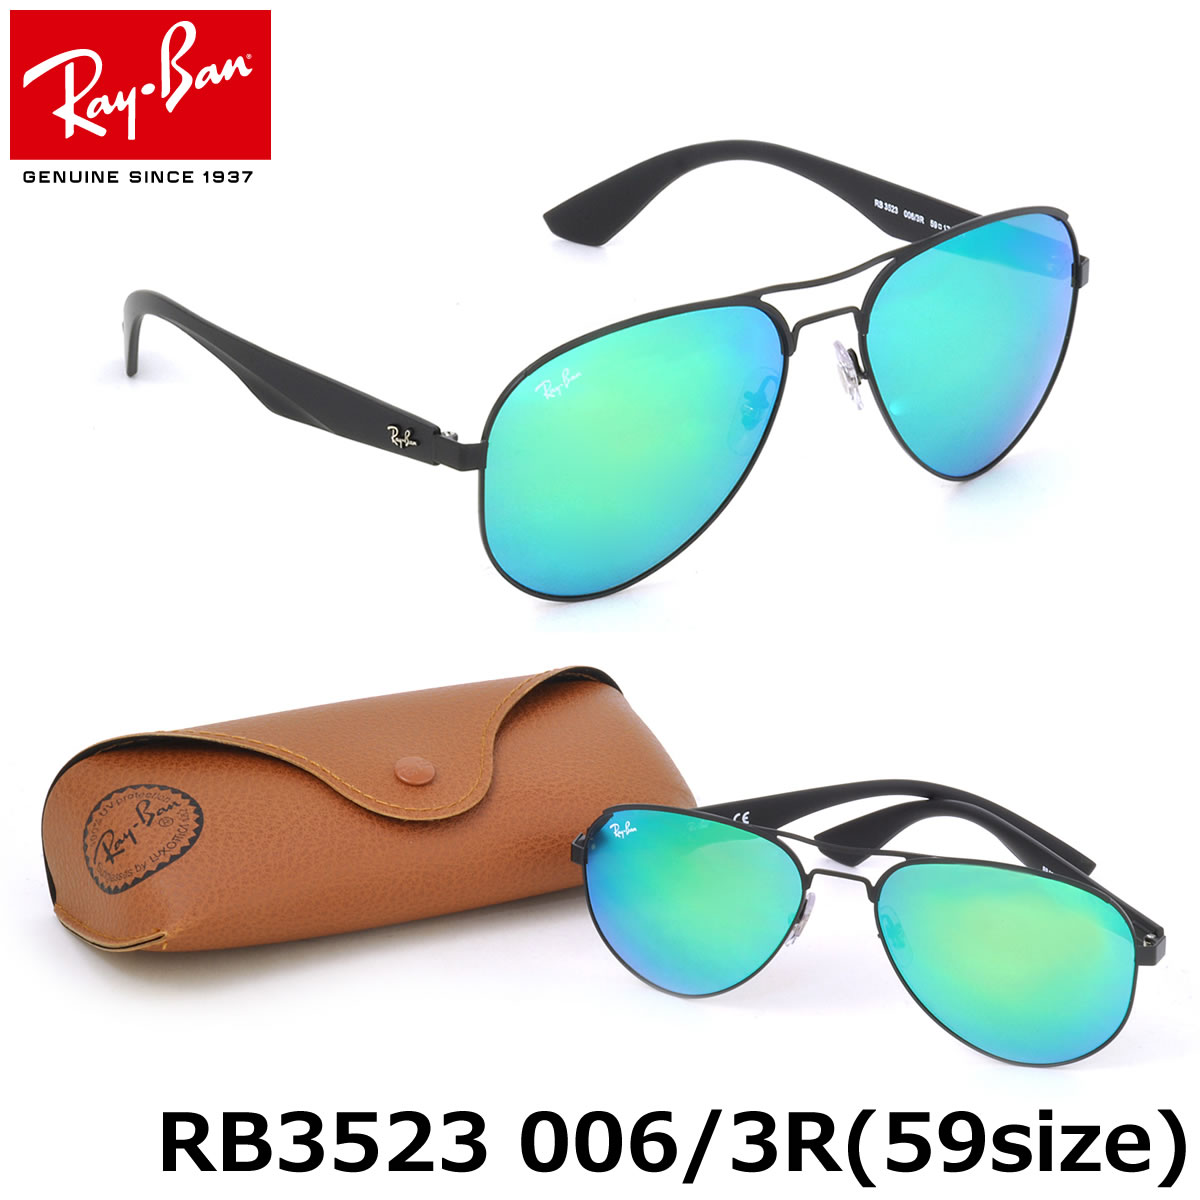 14ddbe510d1 Optical Shop Thats  Ray-Ban Sunglasses RB3523 006 3R 59size GENUINE ...